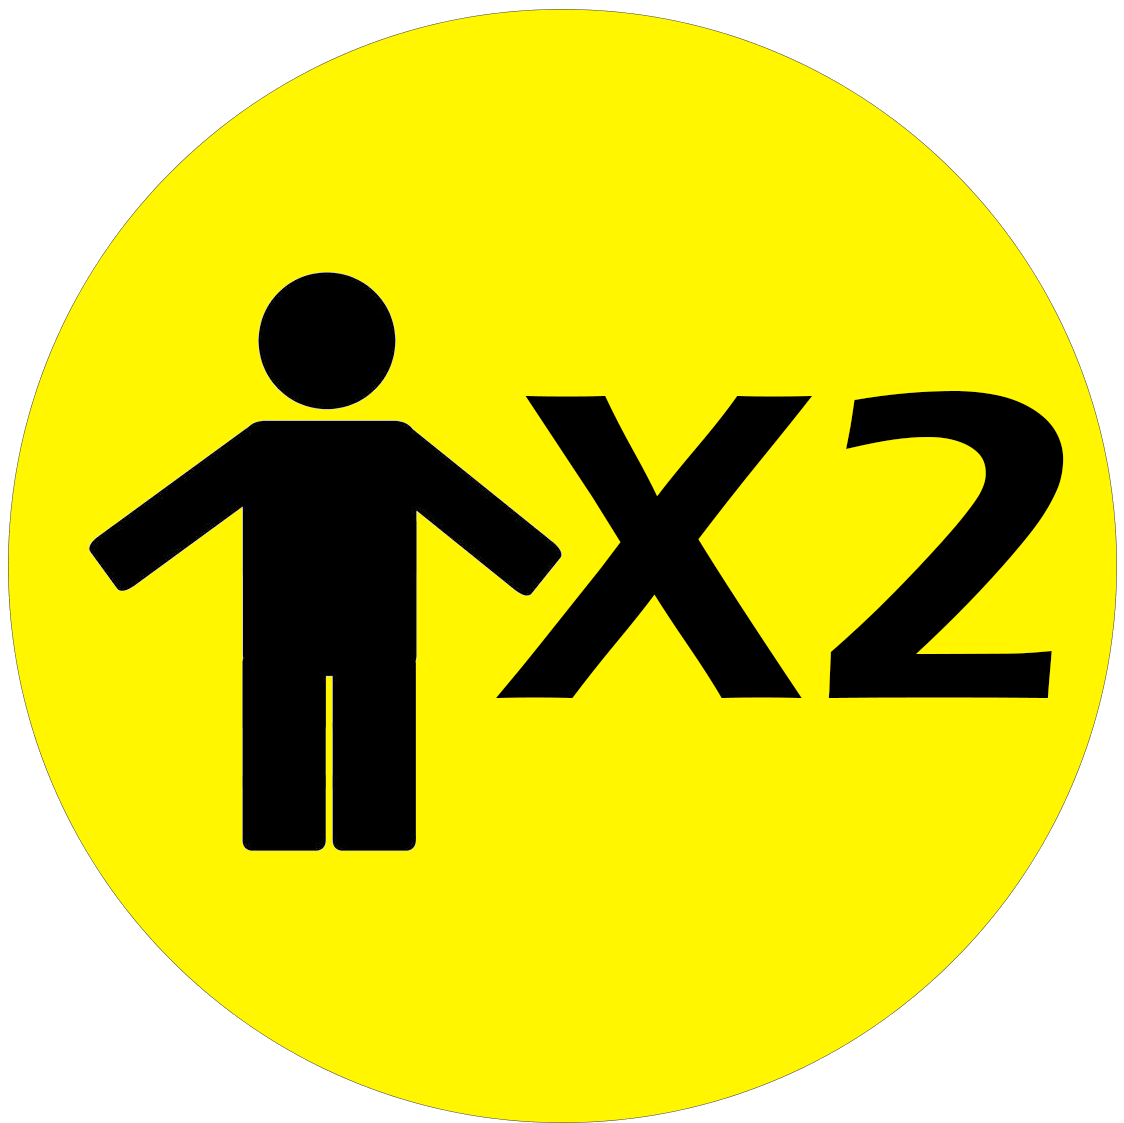 2 Person Lift icon